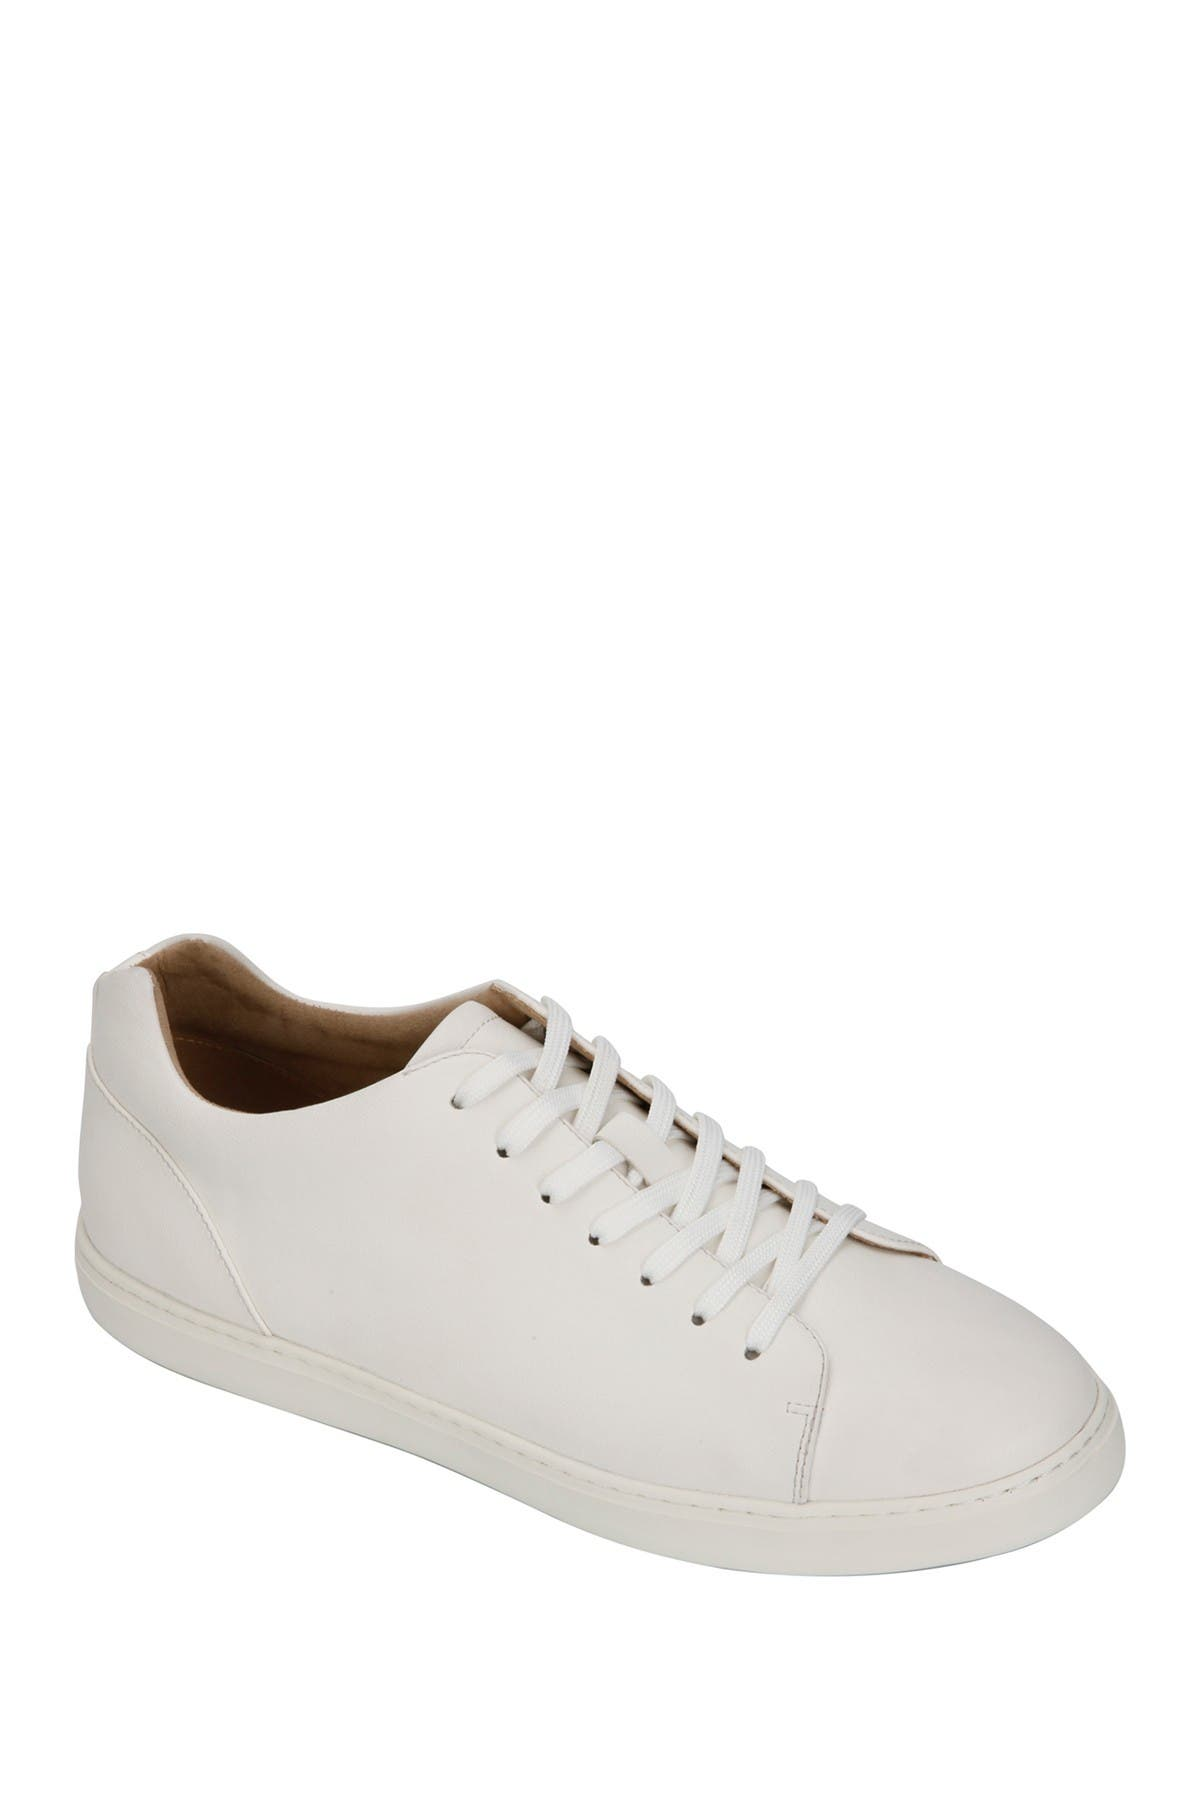 Image of Kenneth Cole Reaction Indy Sneaker - Wide Width Available